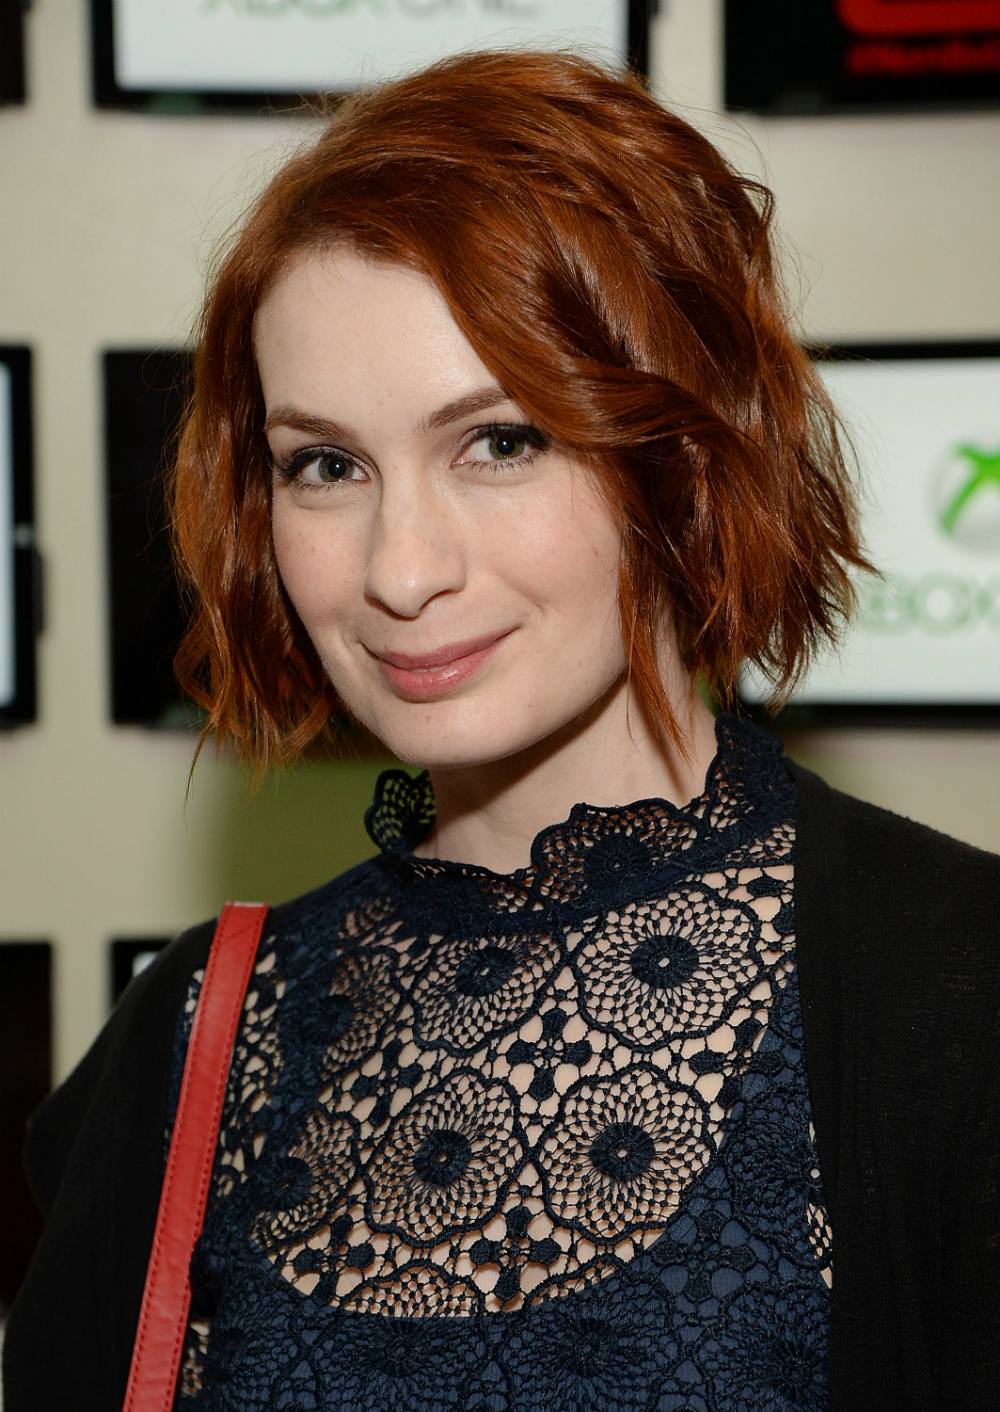 Felicia Day Backgrounds on Wallpapers Vista